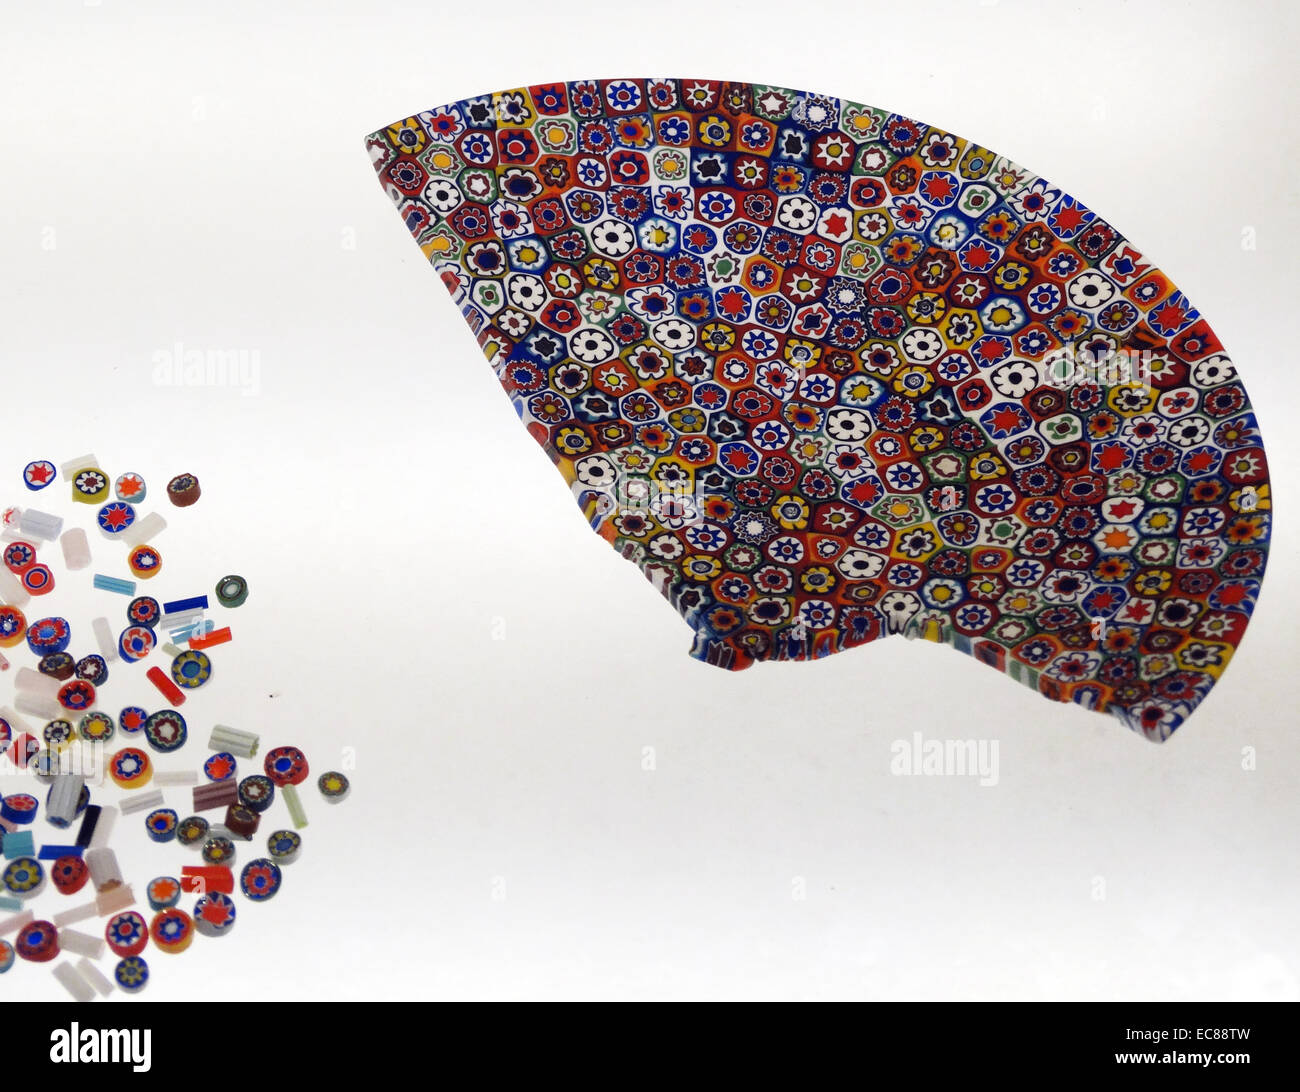 Bowl fragments, mosaic-glass canes, beads and sections. Murano, Italy, 20th century. - Stock Image